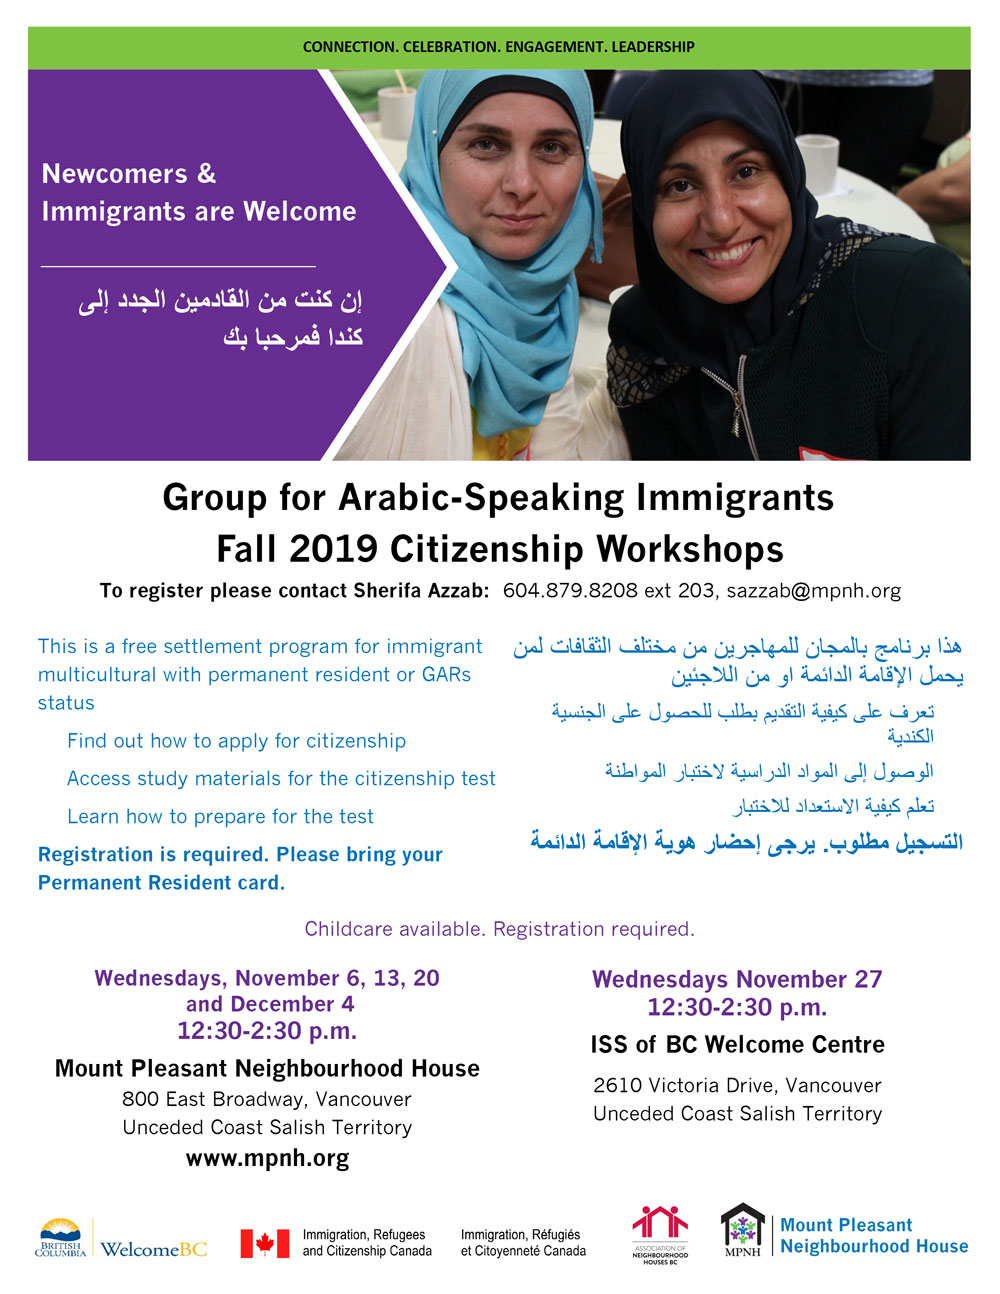 An image of the poster with workshop details, featuring a photo of two Arabic-speaking friends smiling for a photo